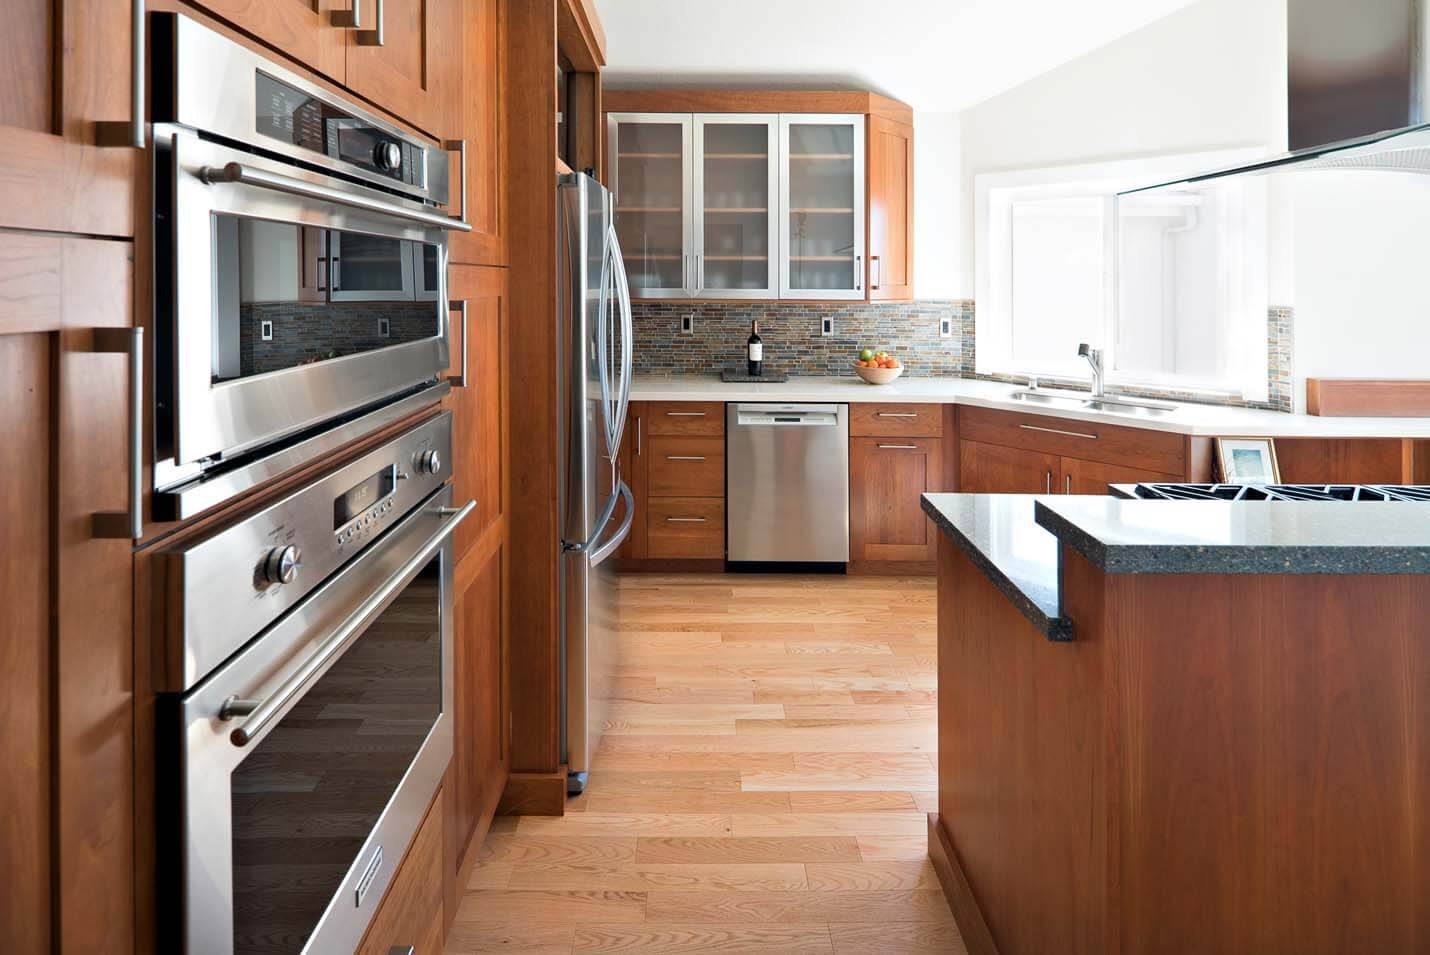 Residential Remodeling Companies, Residential Remodeling Companies Orange County, Residential Remodeling Companies Mission Viejo